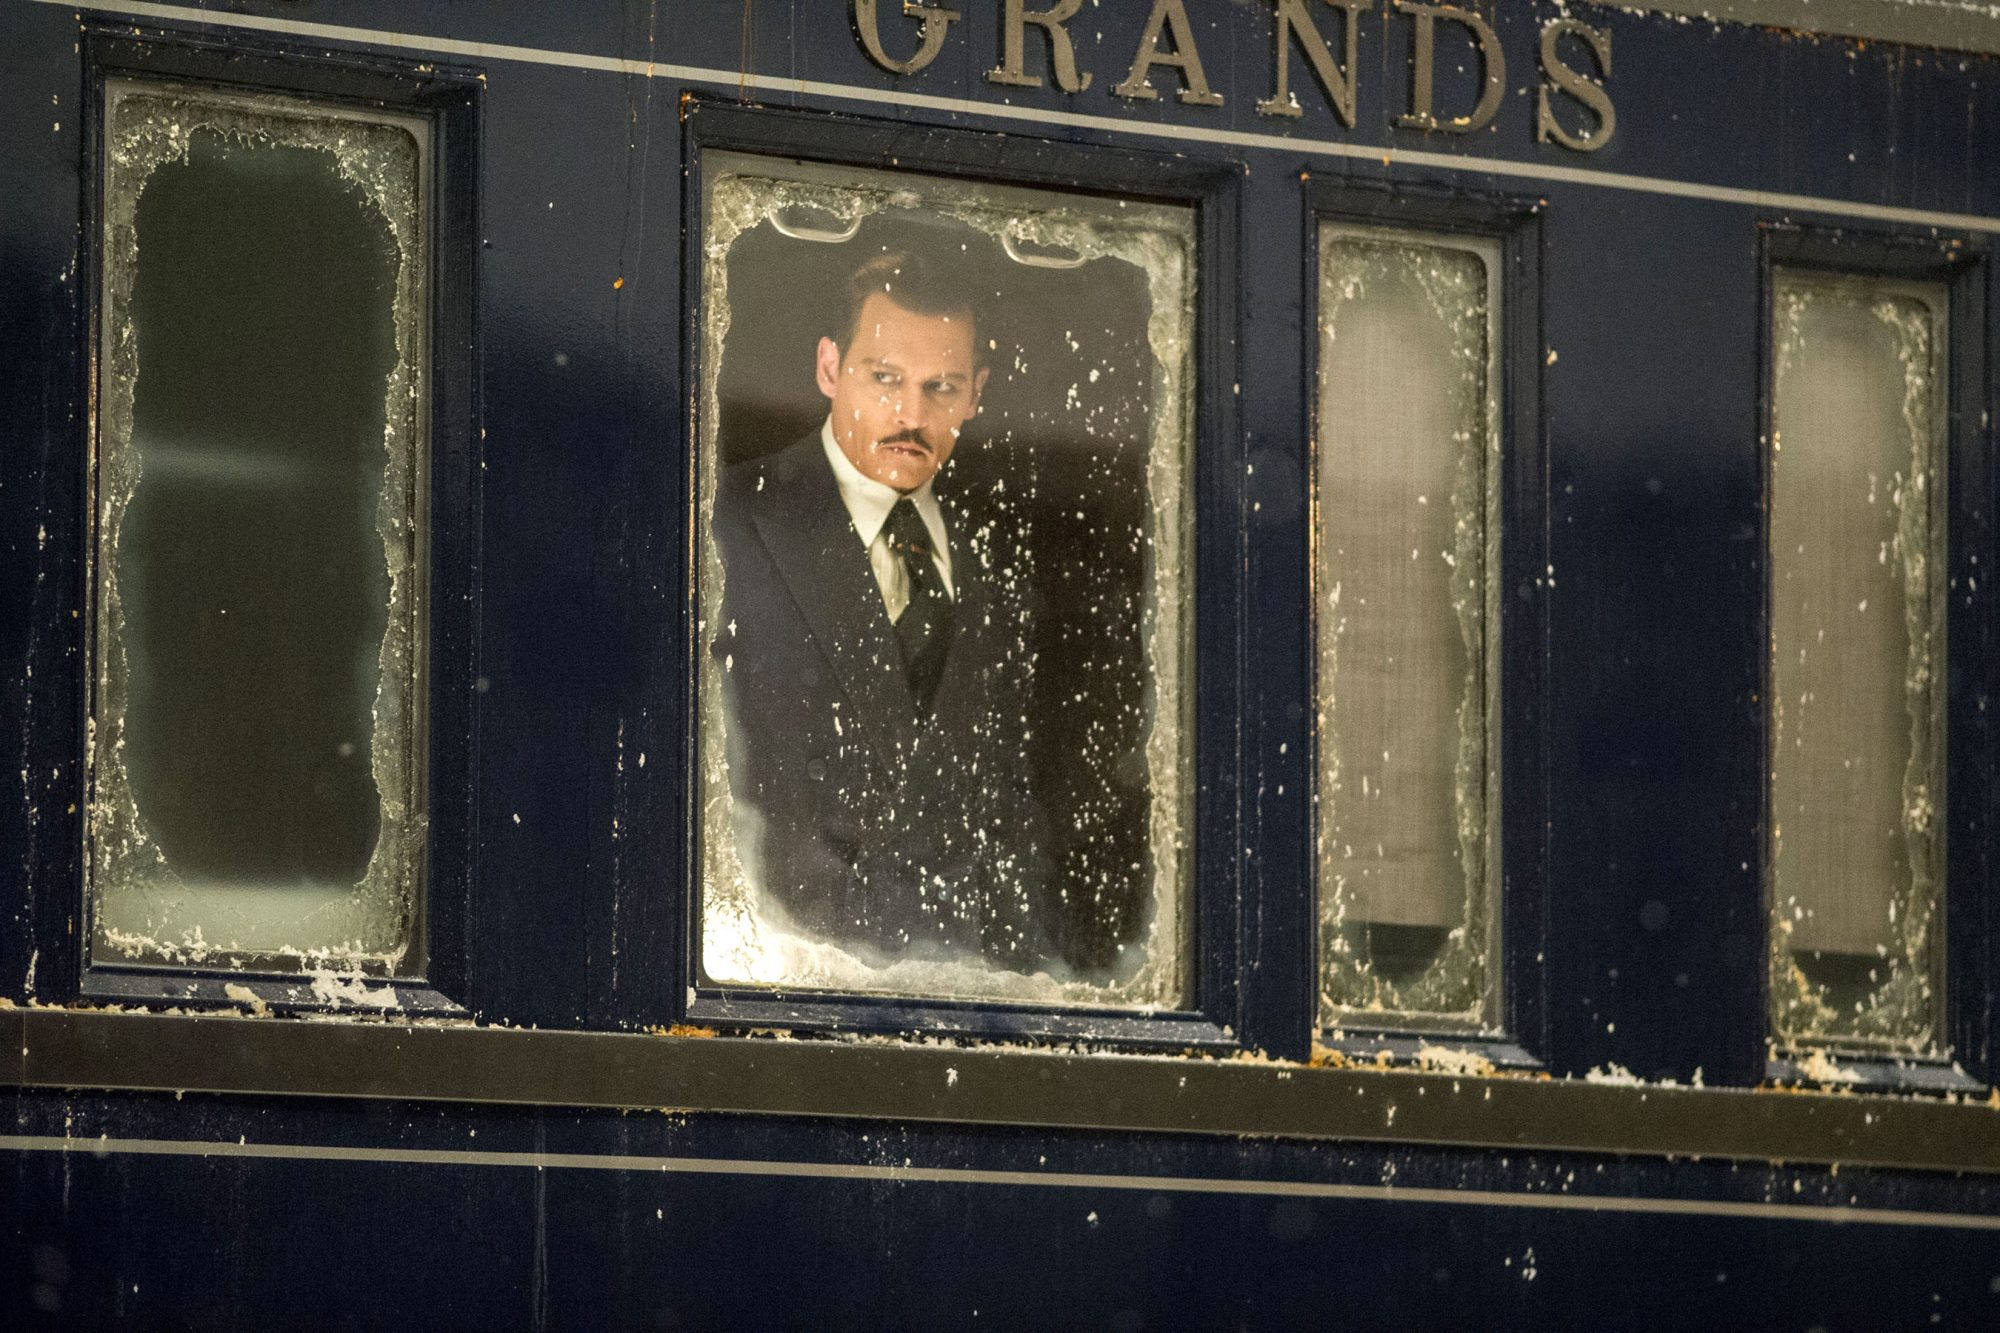 More locked-room mysteries for Murder on the Orient Express fans